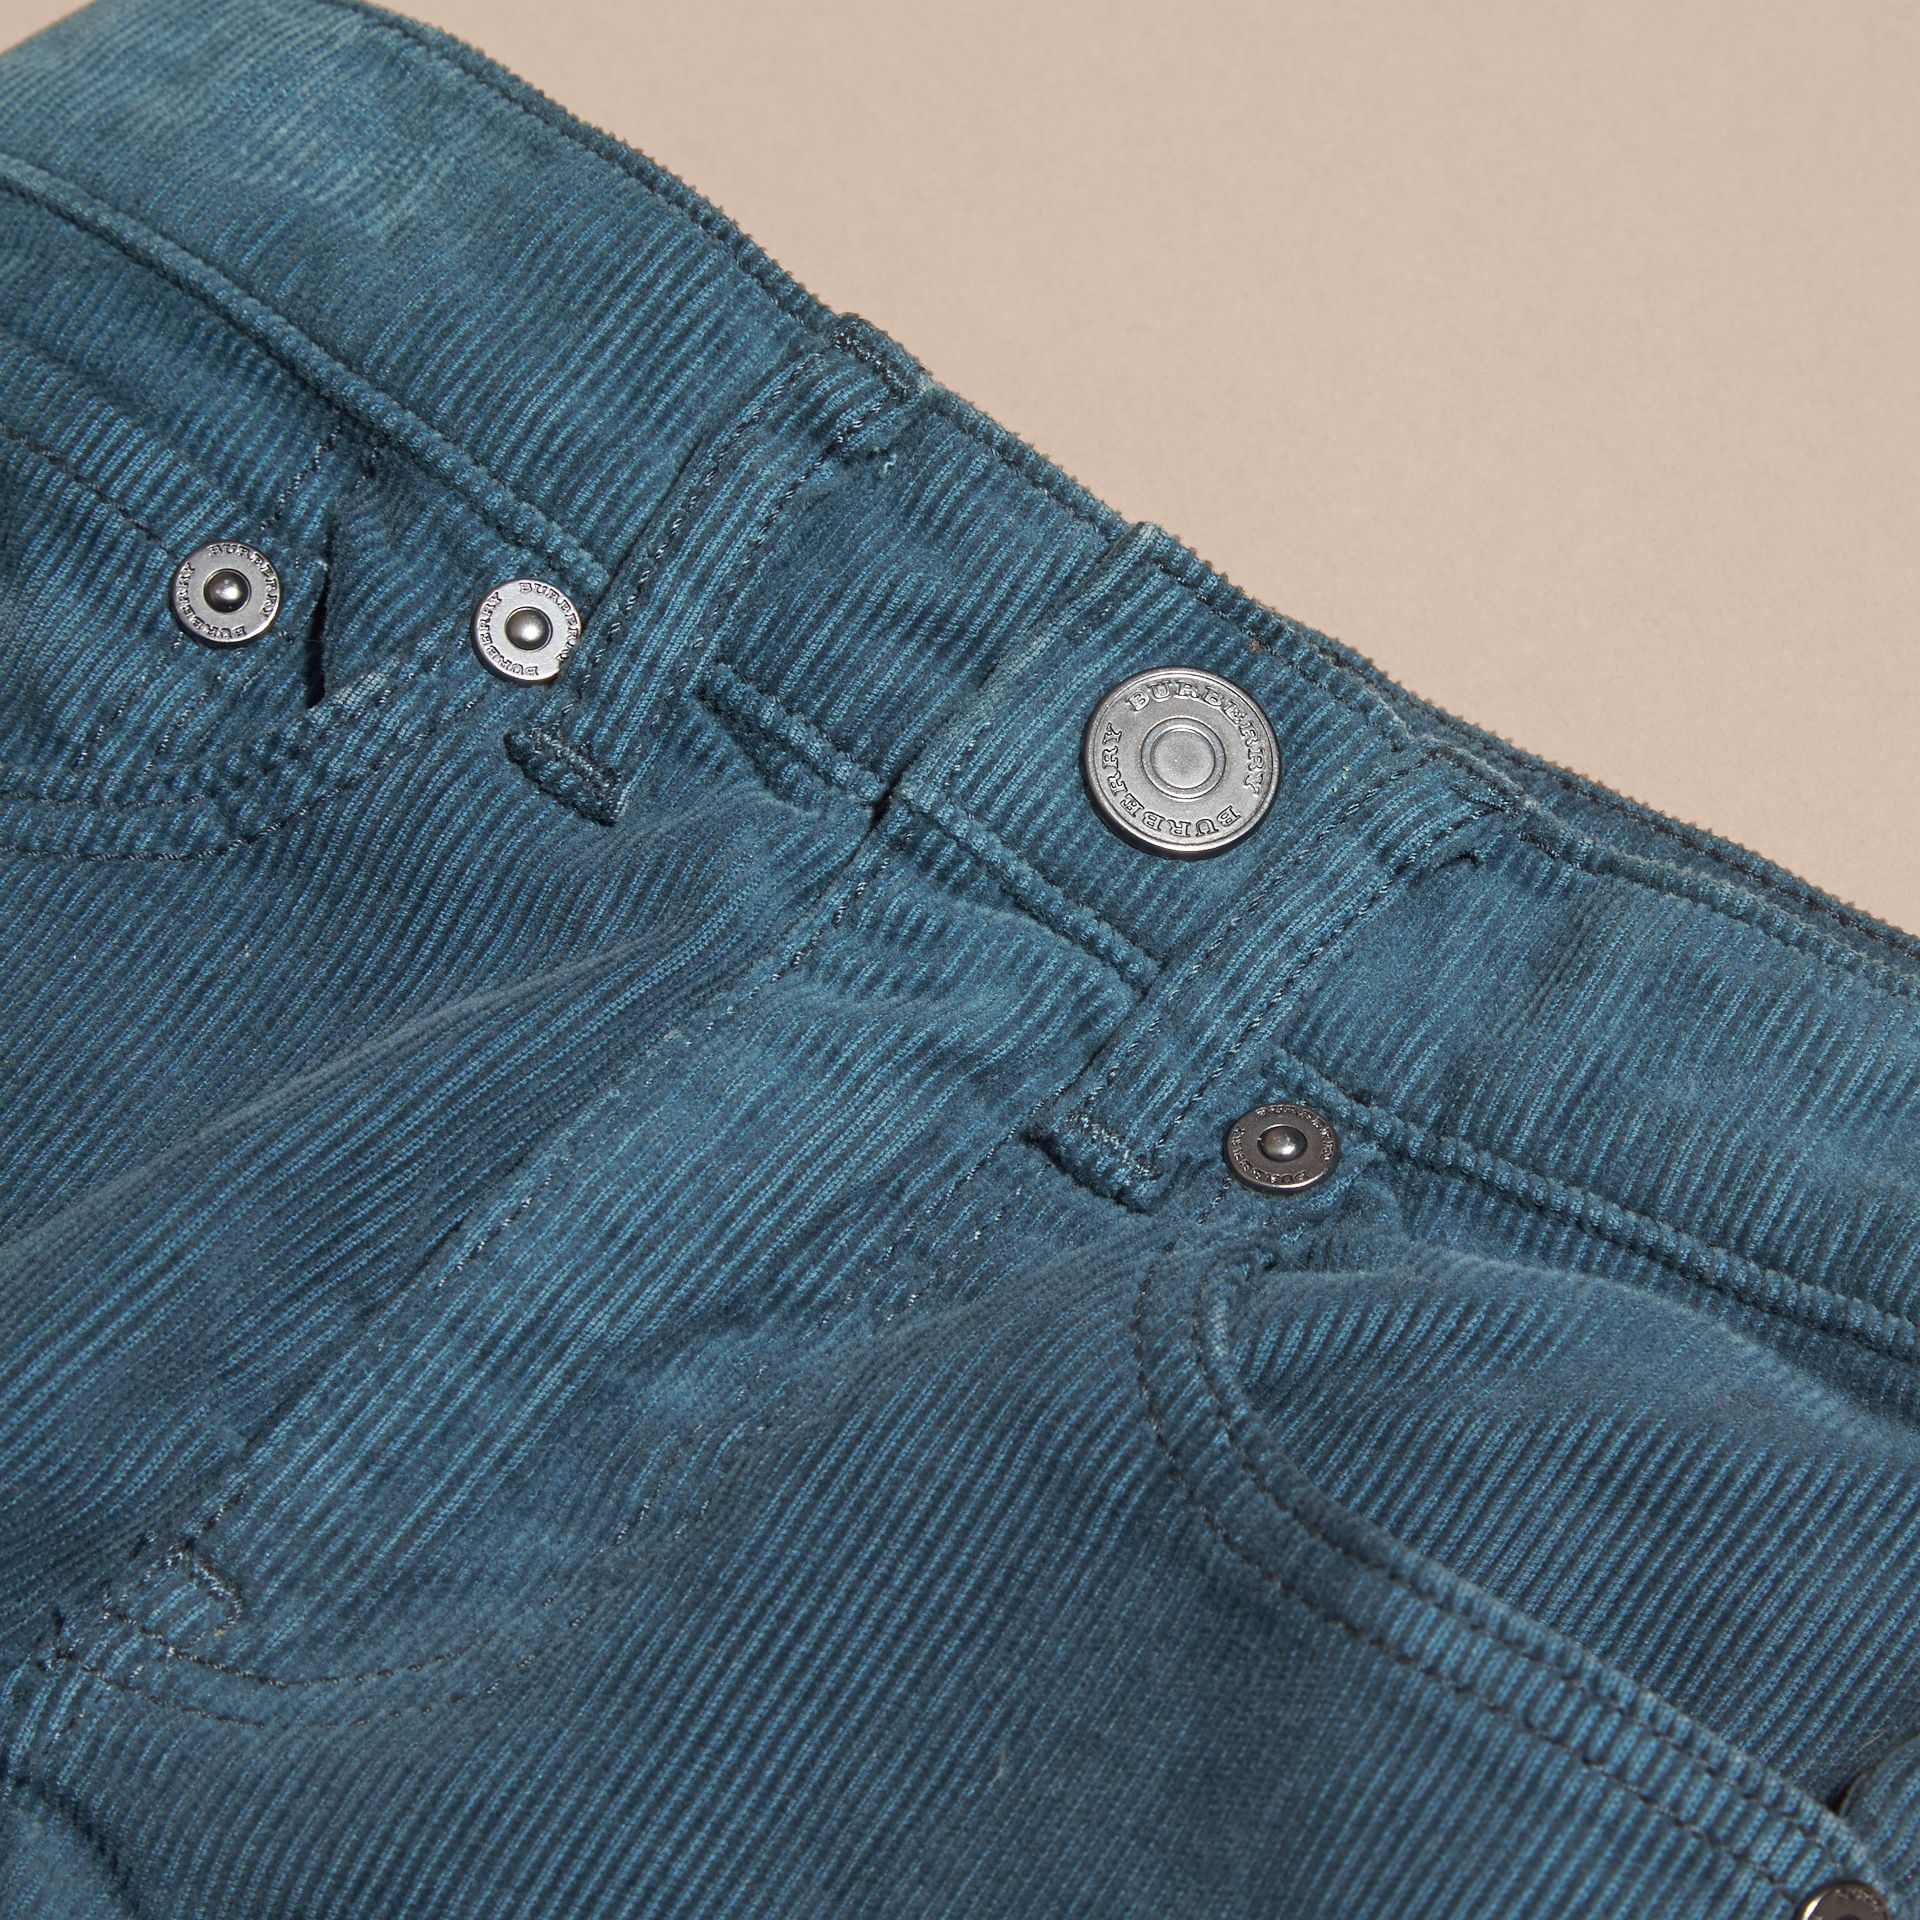 Mineral blue Stretch Corduroy Jeans Mineral Blue - gallery image 2